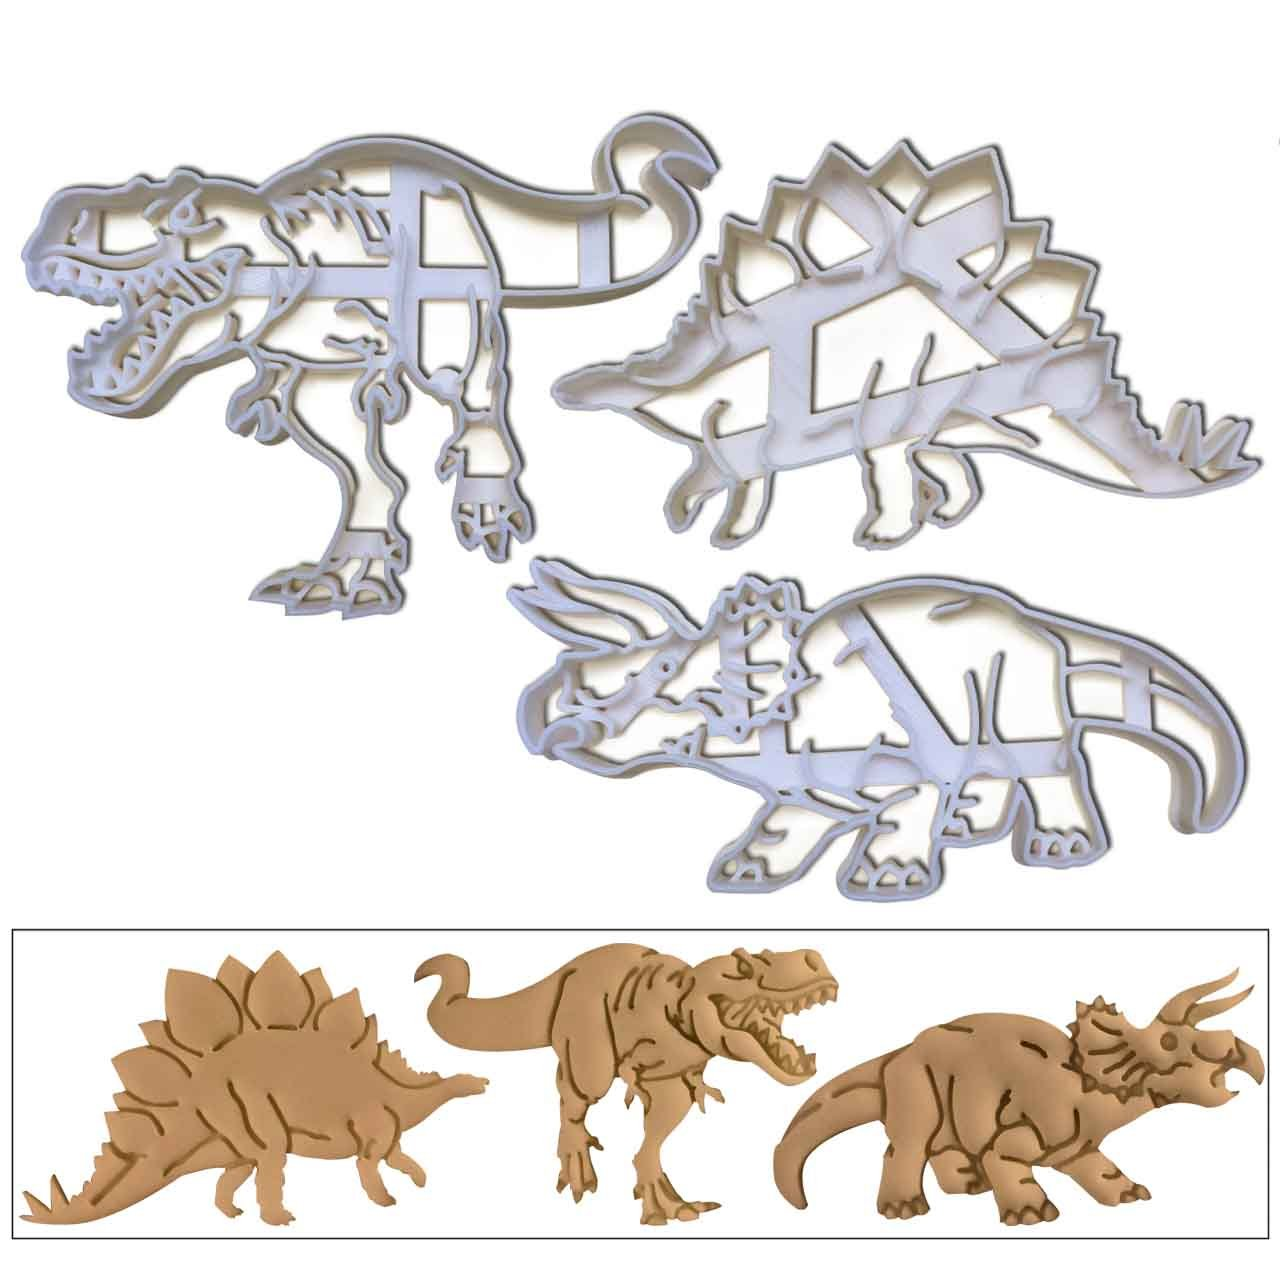 SET of 3 Dinosaurs (Tyrannosaurus Rex, Stegosaurus and Triceratops) cookie cutters, 3 pcs, Ideal gift for dinosaur theme party